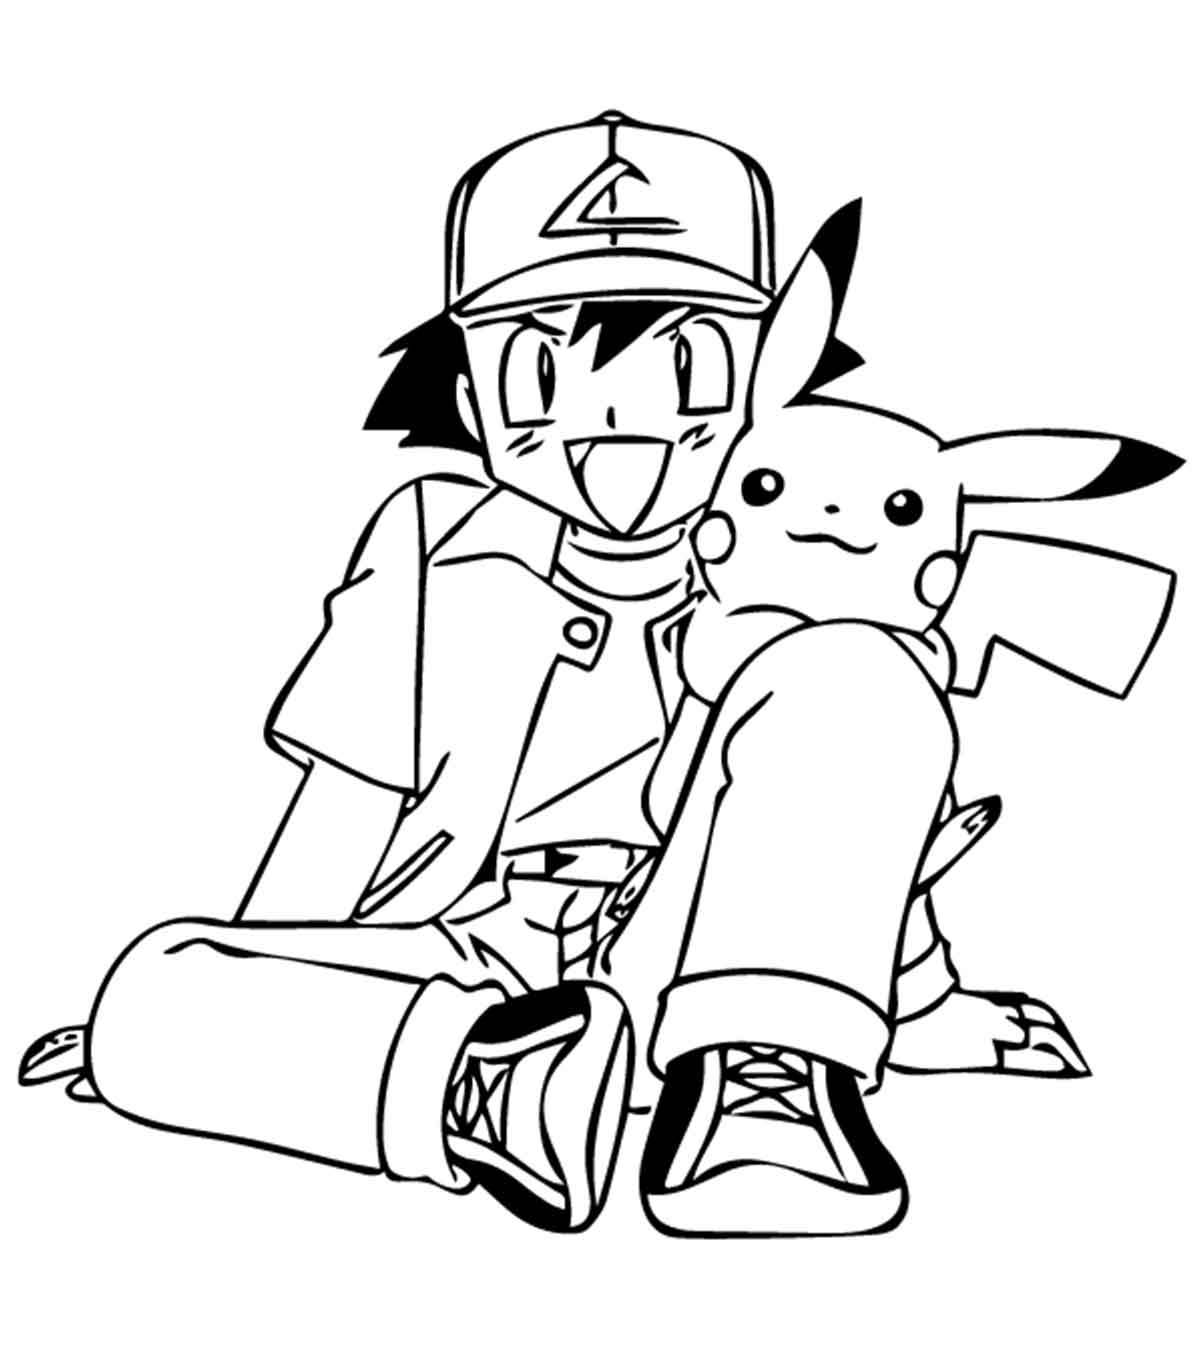 able-Pokemon-Coloring-Pages-Your-Toddler-Will-Love.jpg